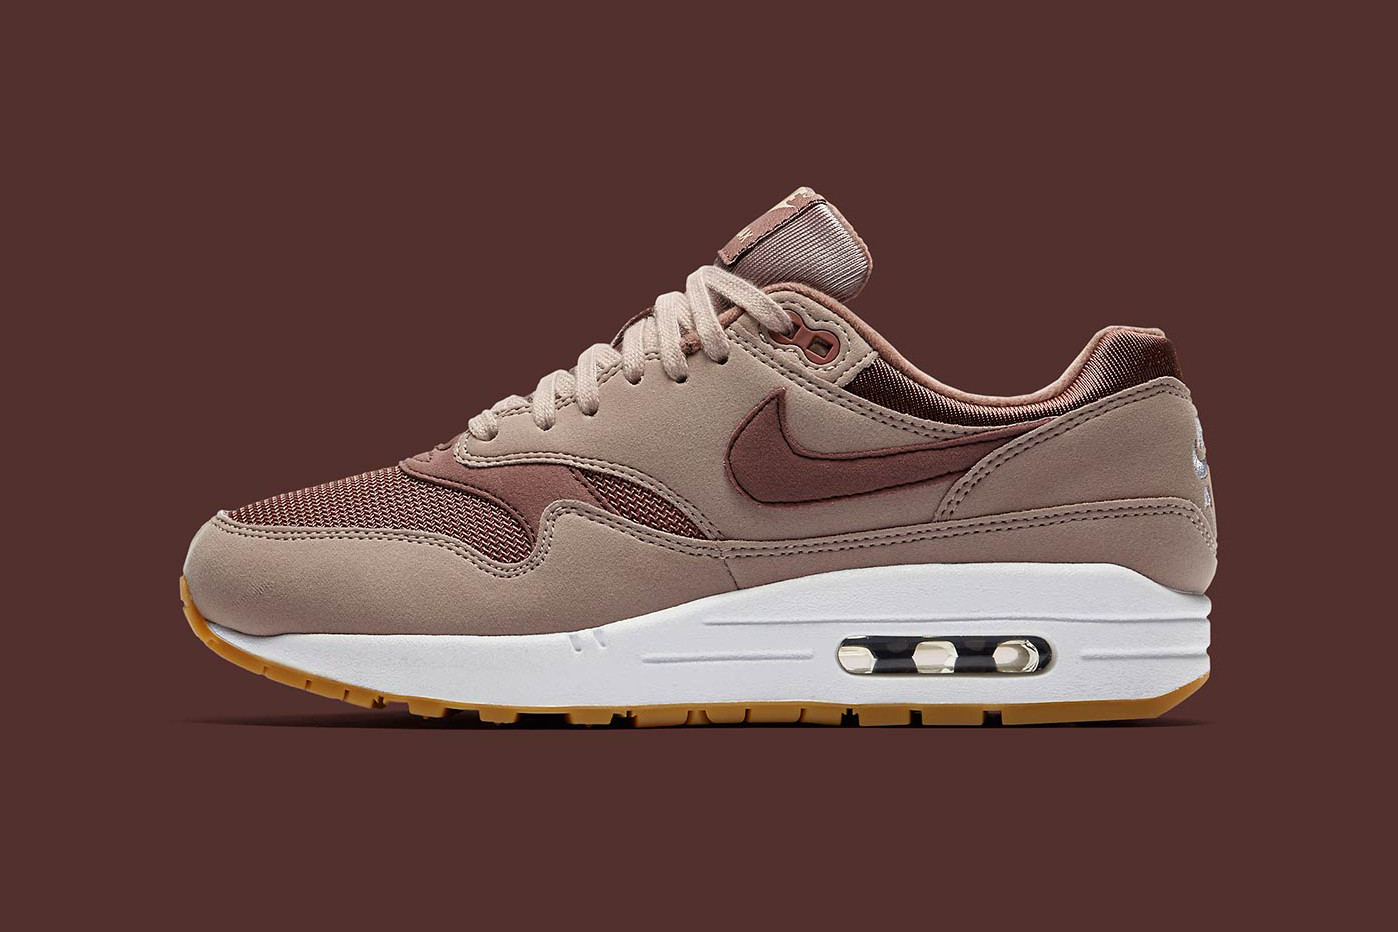 Nike Preps For Autumn With The Air Max 1 'Diffused Taupe